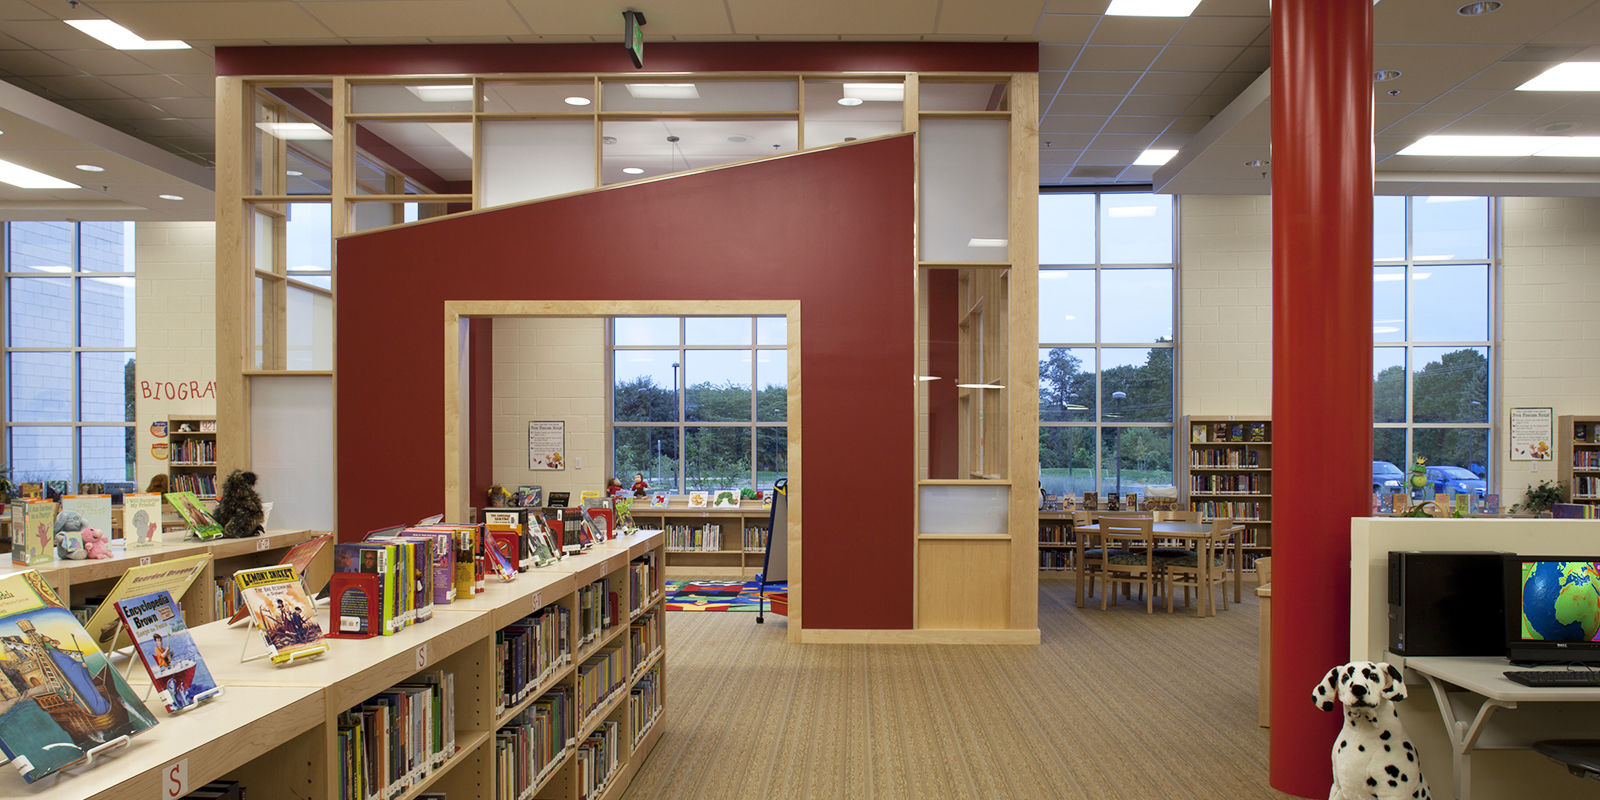 Gwwo architects projects red pump elementary school - Colleges that offer interior design programs ...